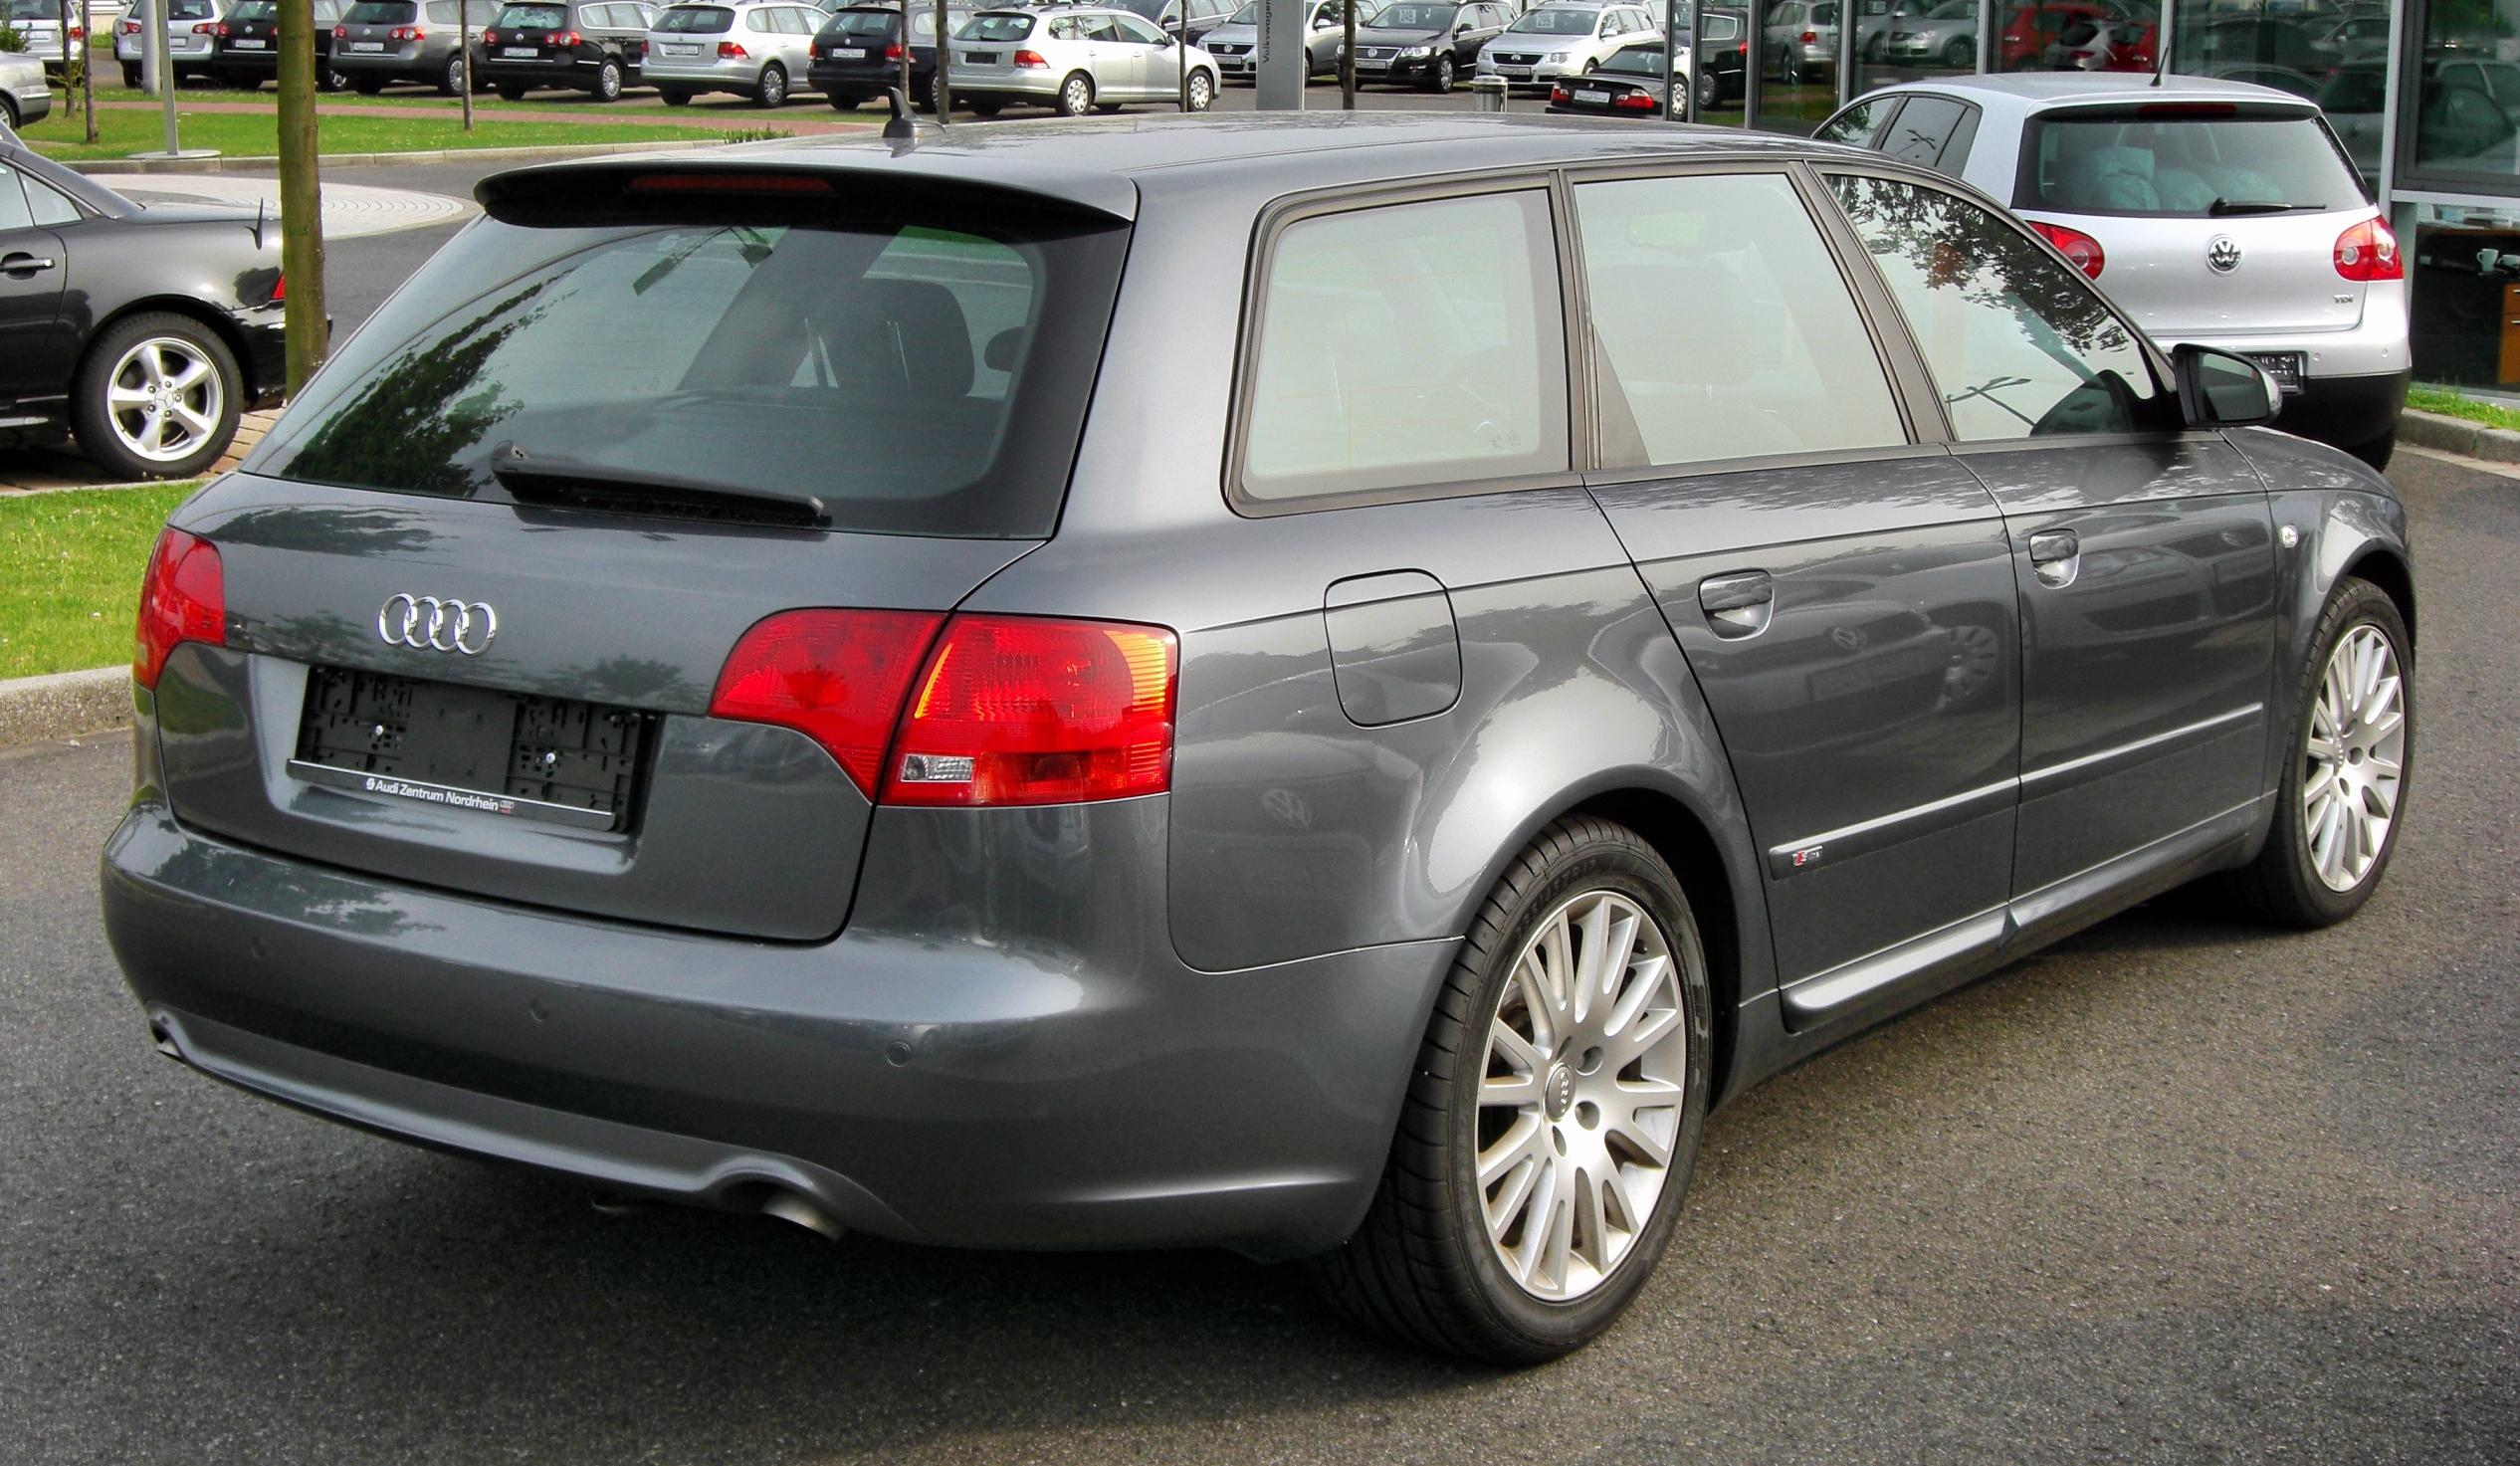 file audi a4 b7 avant s line 20090809 rear jpg wikimedia commons. Black Bedroom Furniture Sets. Home Design Ideas